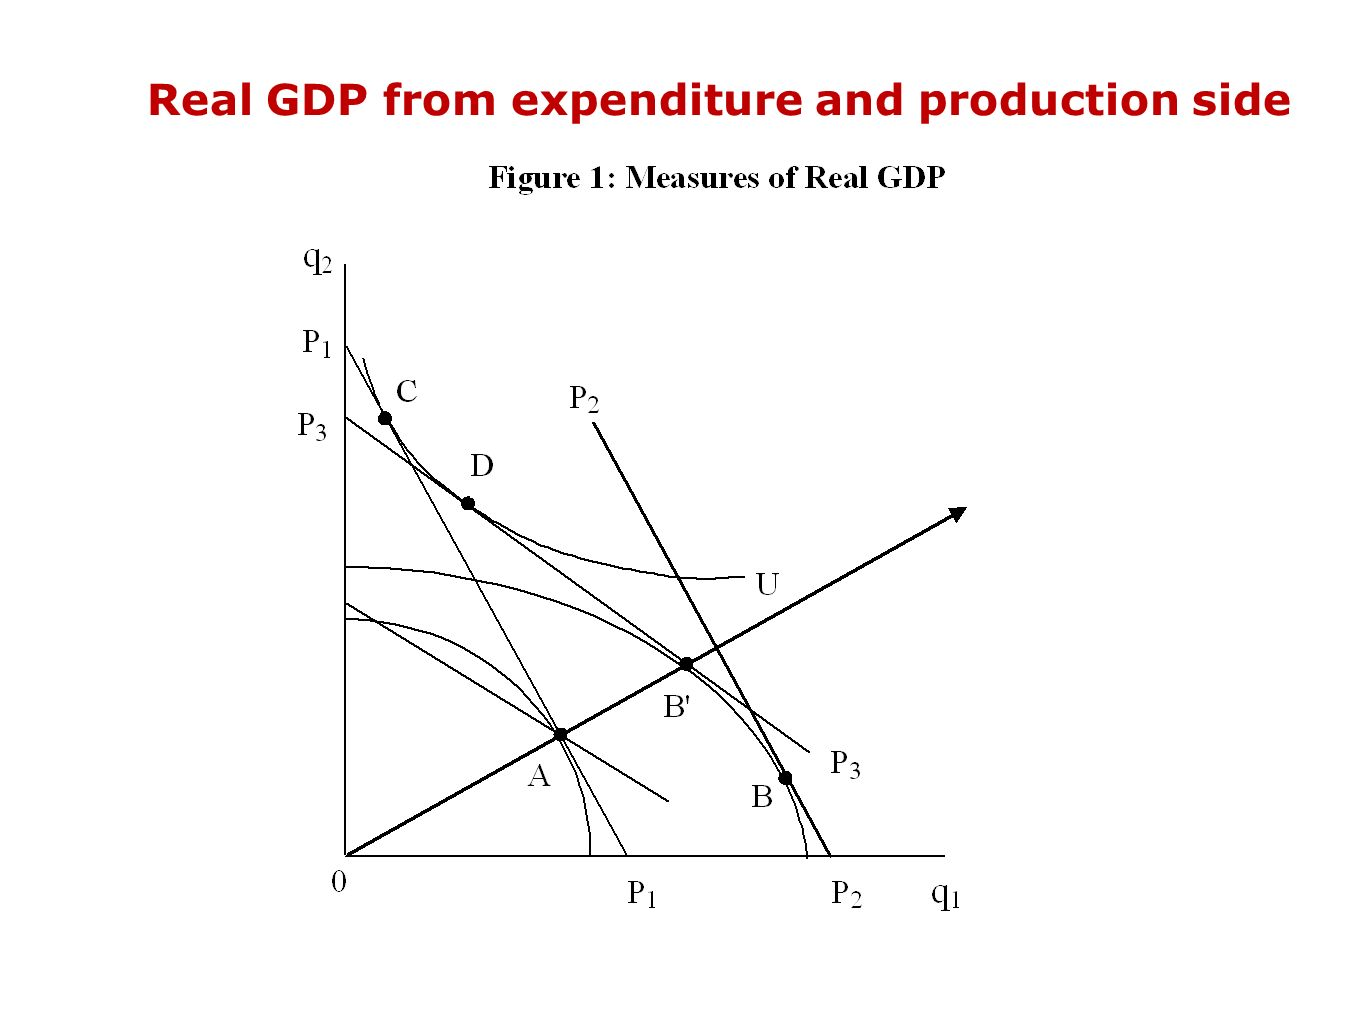 Real GDP from expenditure and production side